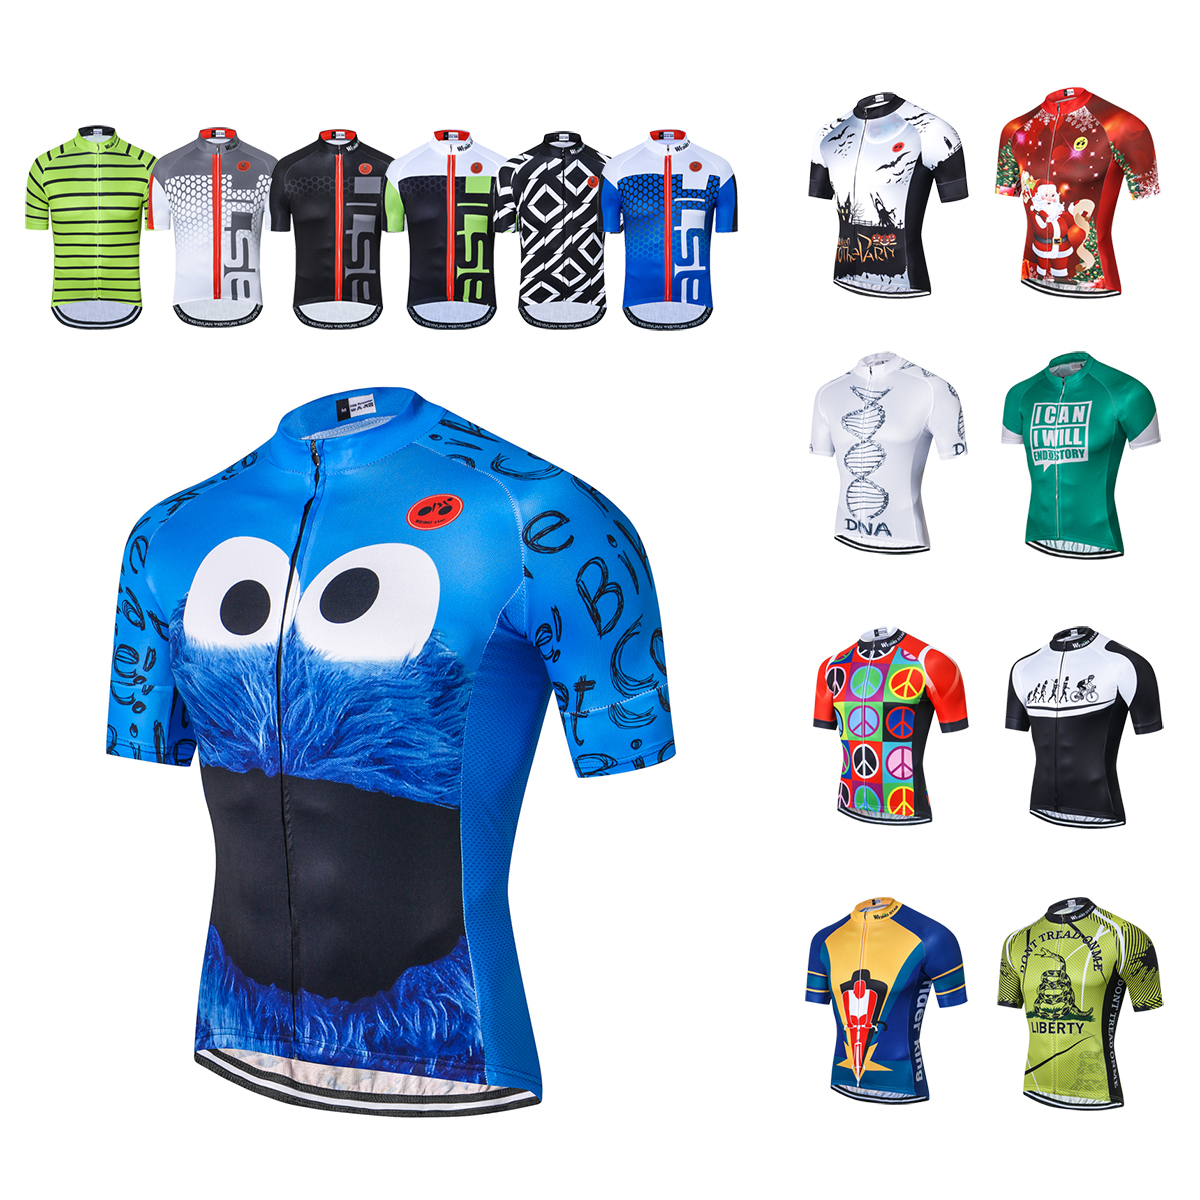 2019 <font><b>Cycling</b></font> Jersey Men Summer Short Sleeve Pro <font><b>Mtb</b></font> Team Mountain Bike Jersey Ropa Ciclsimo Maillot Bicycle Clothing <font><b>Shirts</b></font> Top image